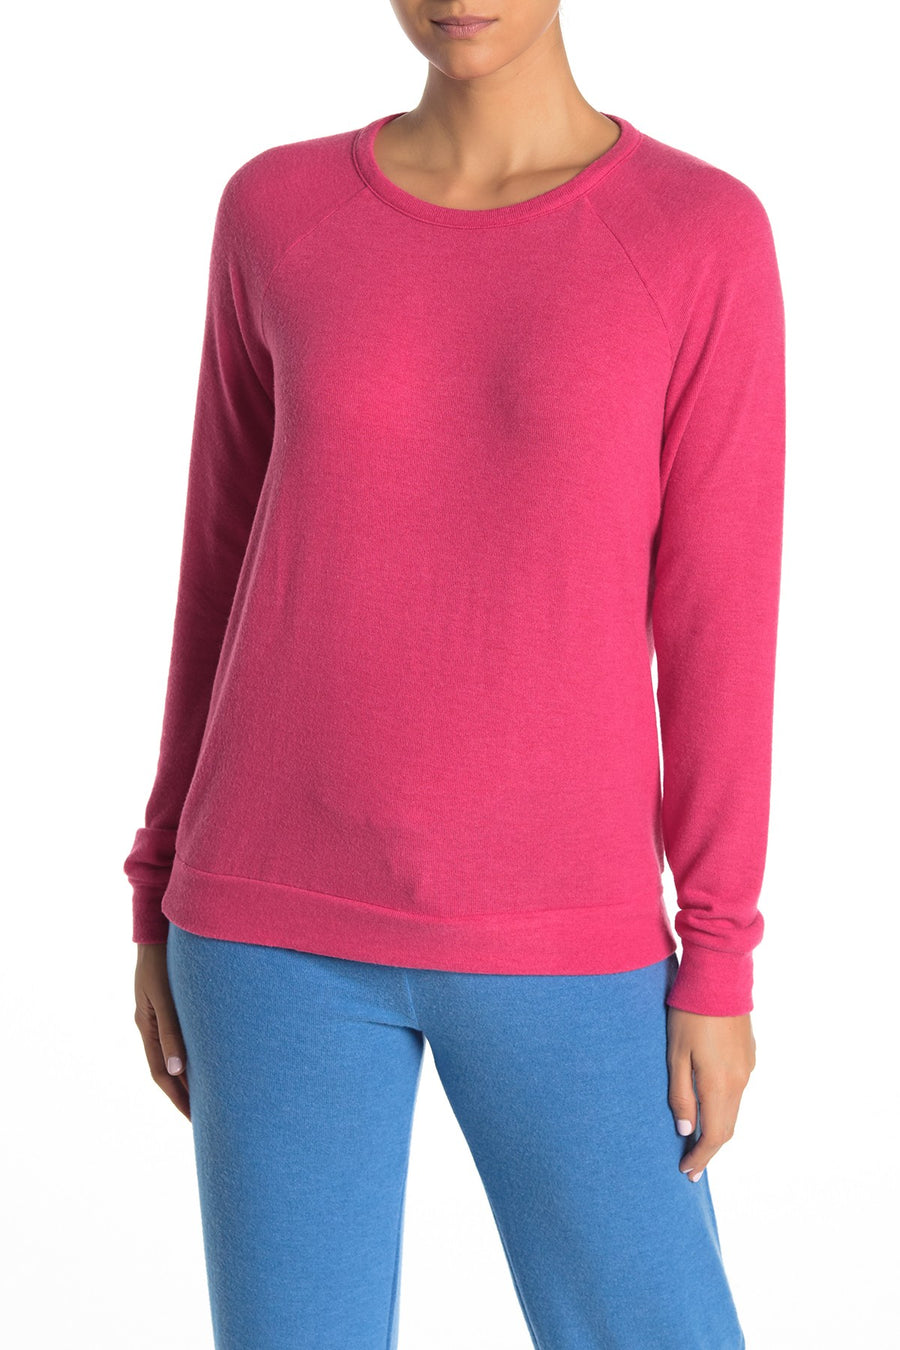 P.J. Salvage Melange Fuchsia Long Sleeve Top